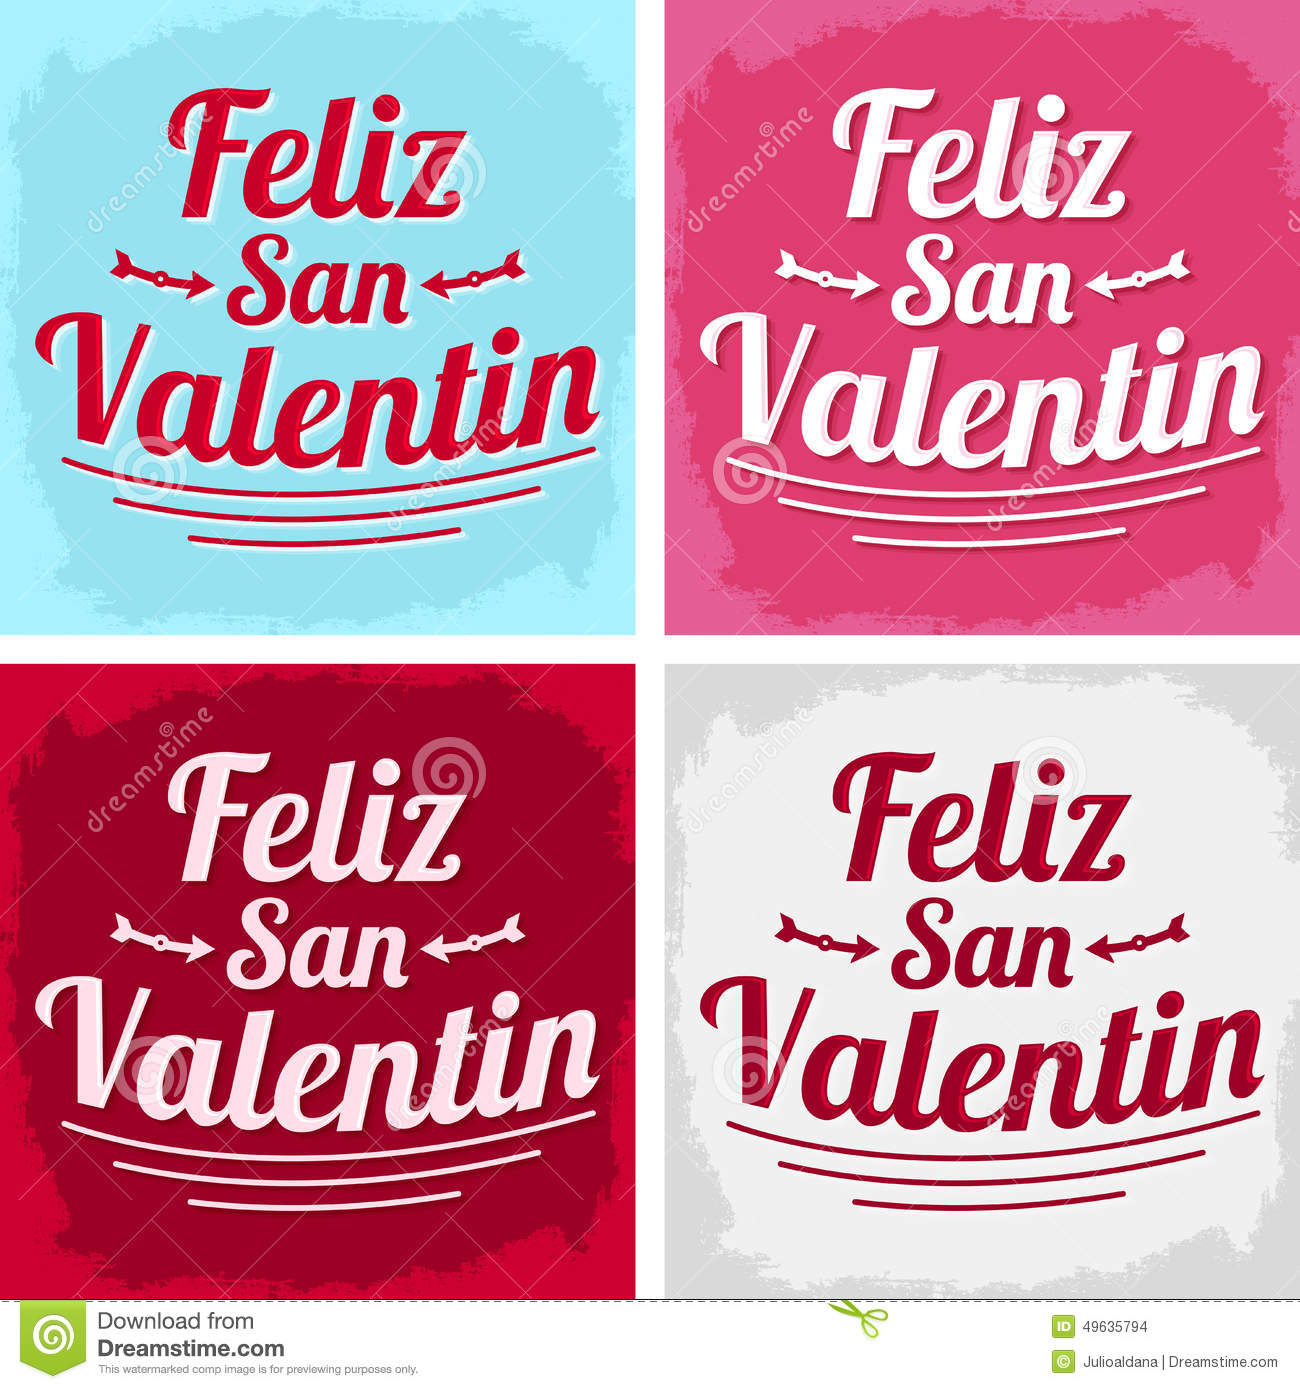 valentines day in spanish Spanishdict is devoted to improving our site based on user feedback and introducing new and innovative features that will continue to help people learn and love the.